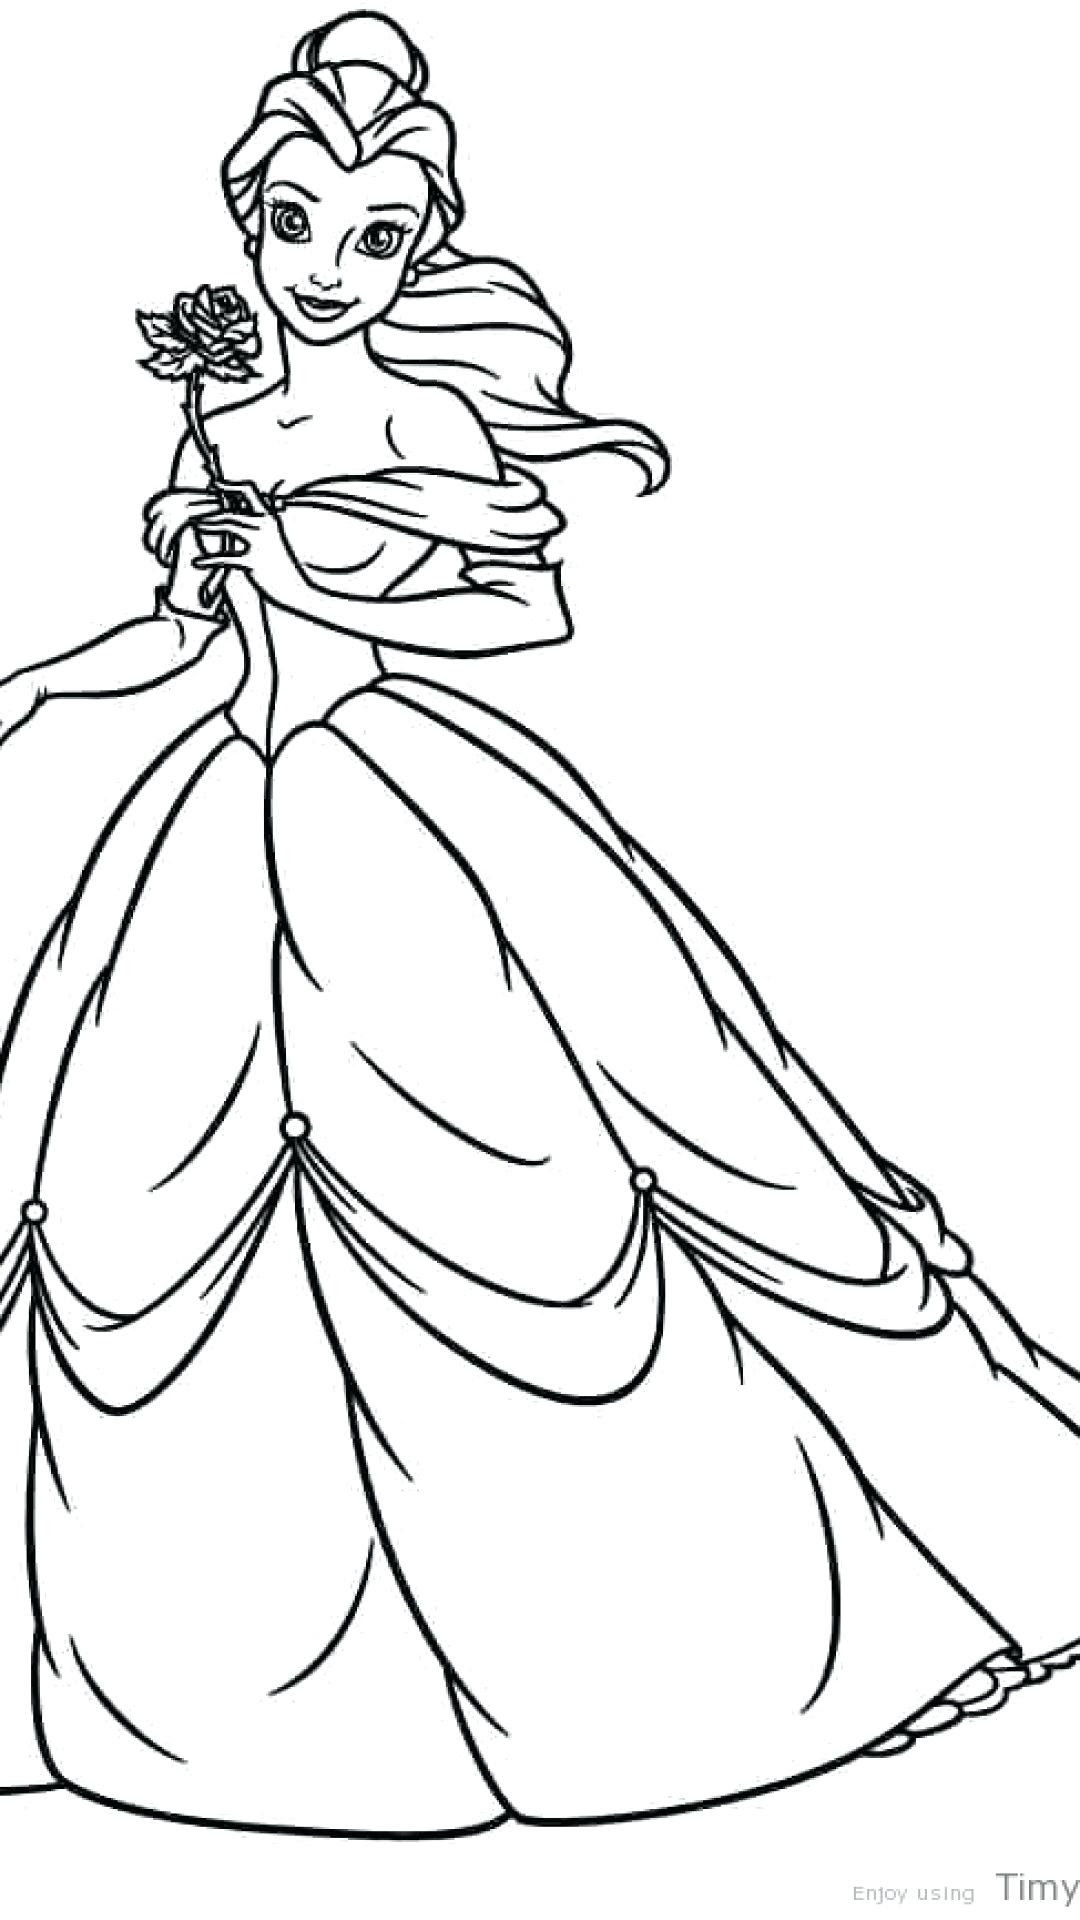 Disney Princess Coloring Pages Belle at GetColorings.com